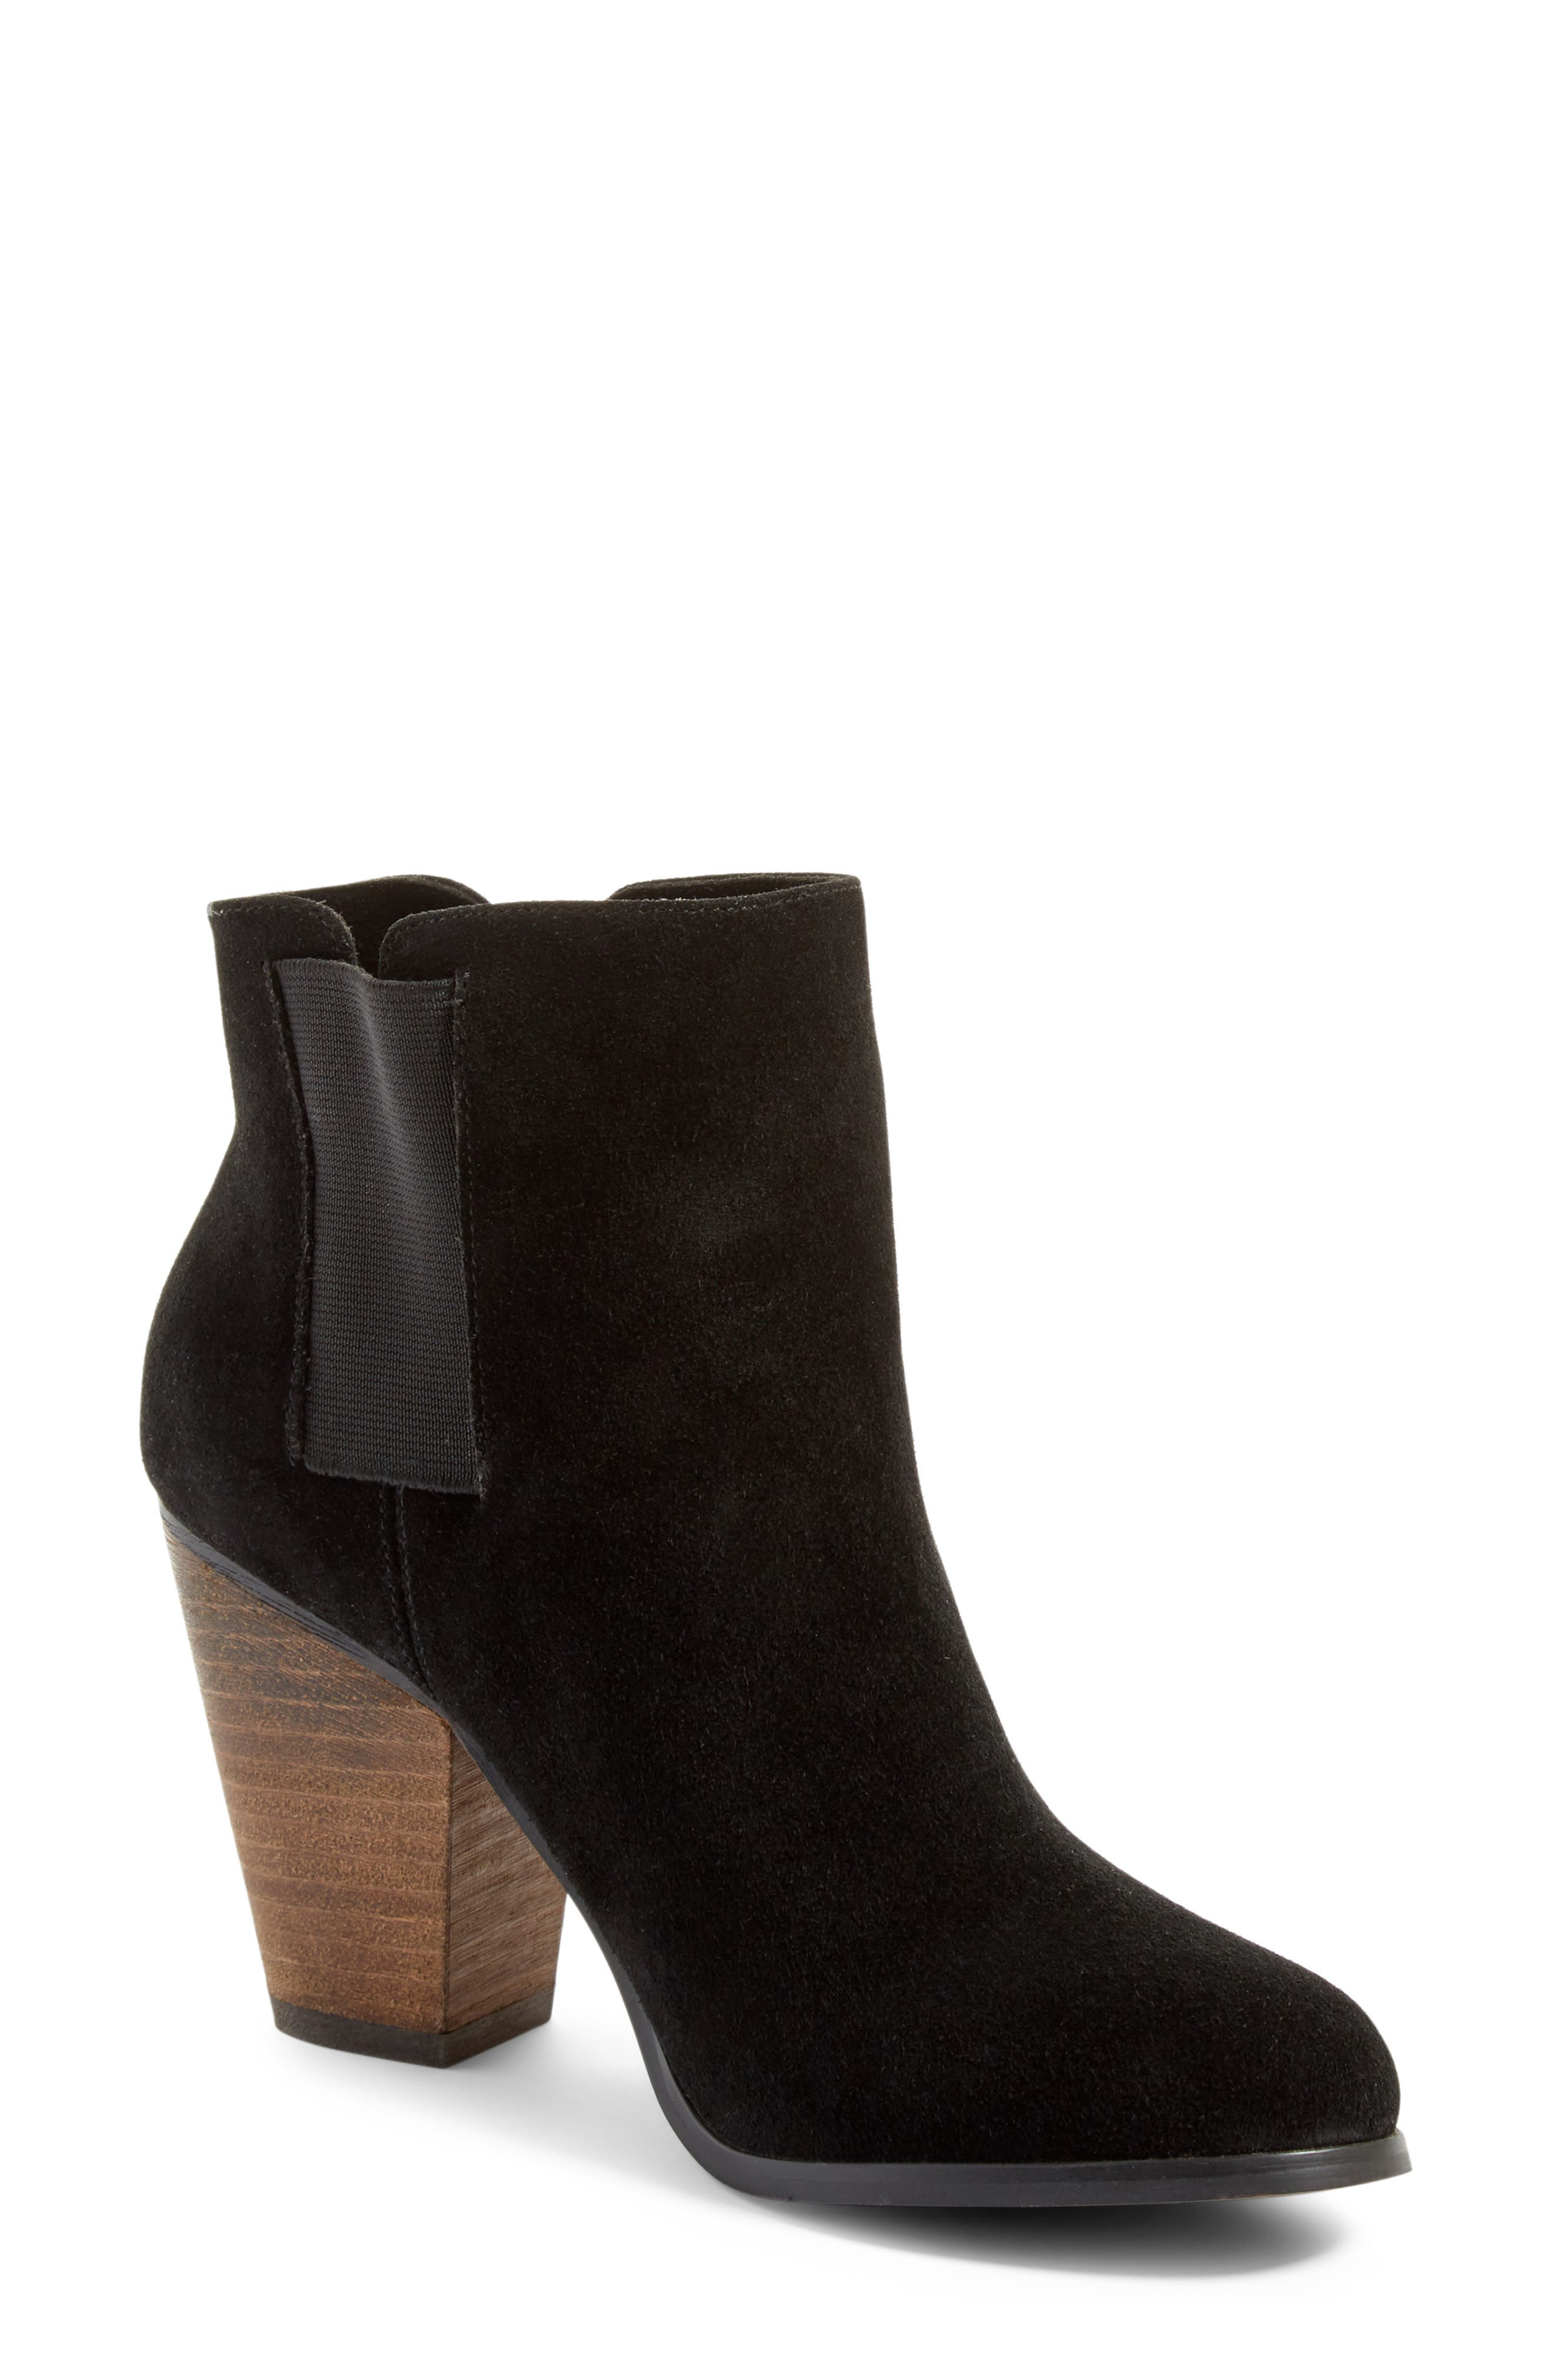 Main Image - Sole Society 'Lylee' Suede Bootie (Women)